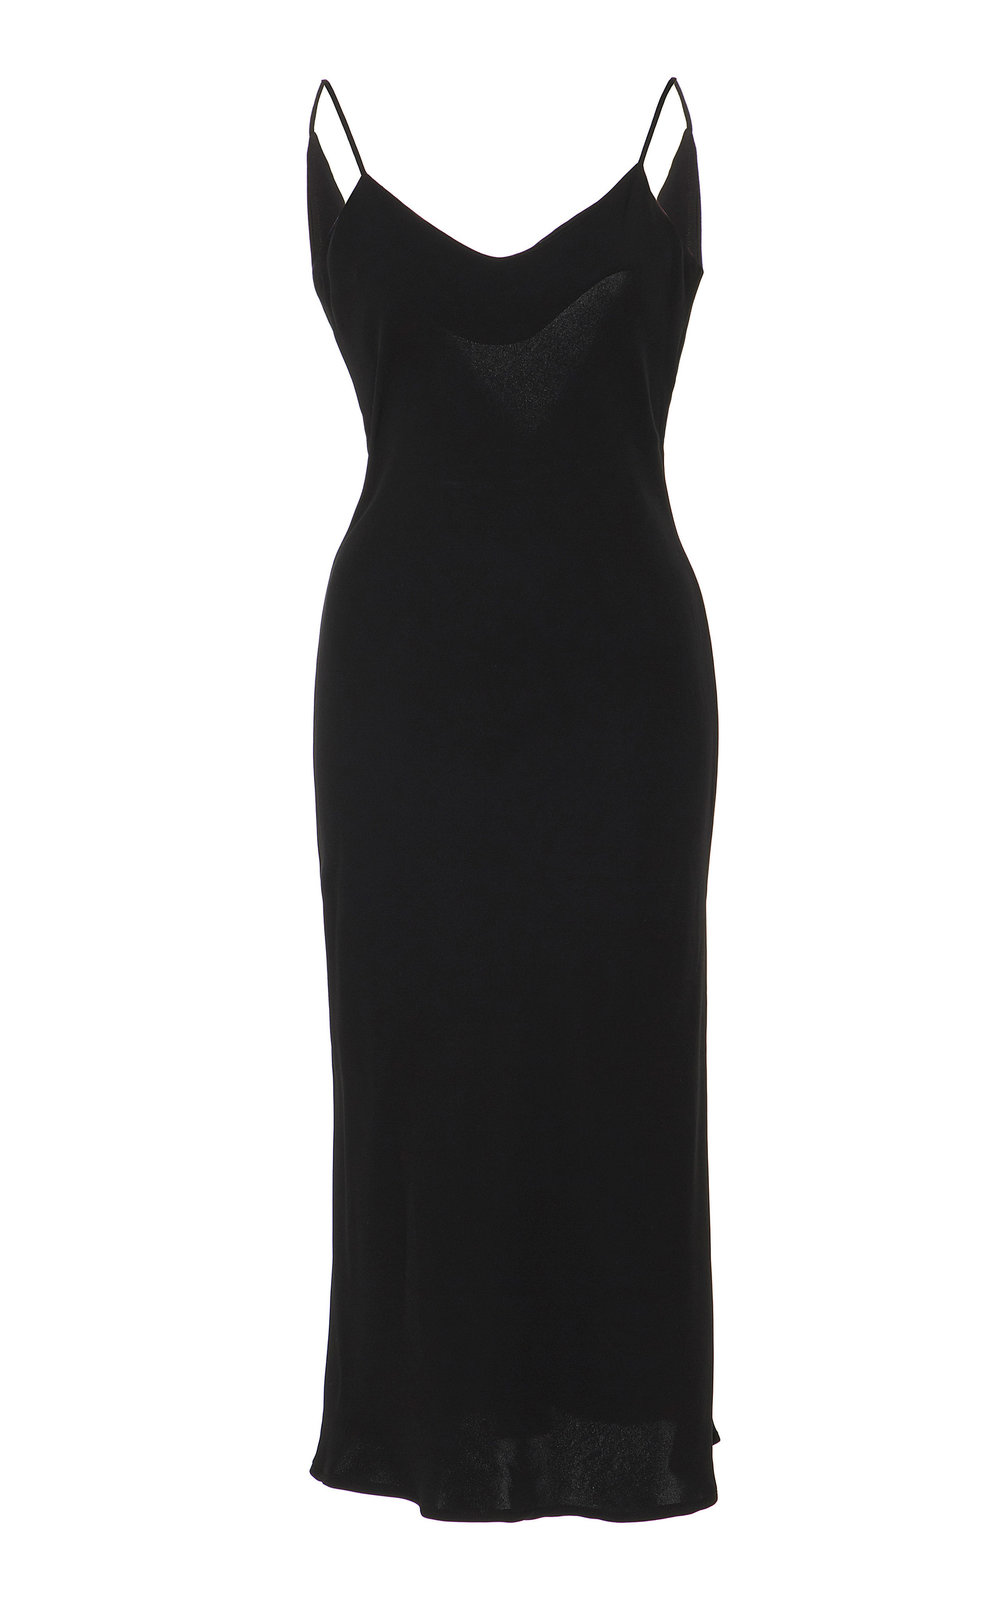 Camassia Silk Draped Dress - BLACK  Made from lustrous silk, this dress is strung from thin shoulder straps and drapes to a midi length. With a slight flare and draped back, this dress offers a refined look that is easy to dress and alter.